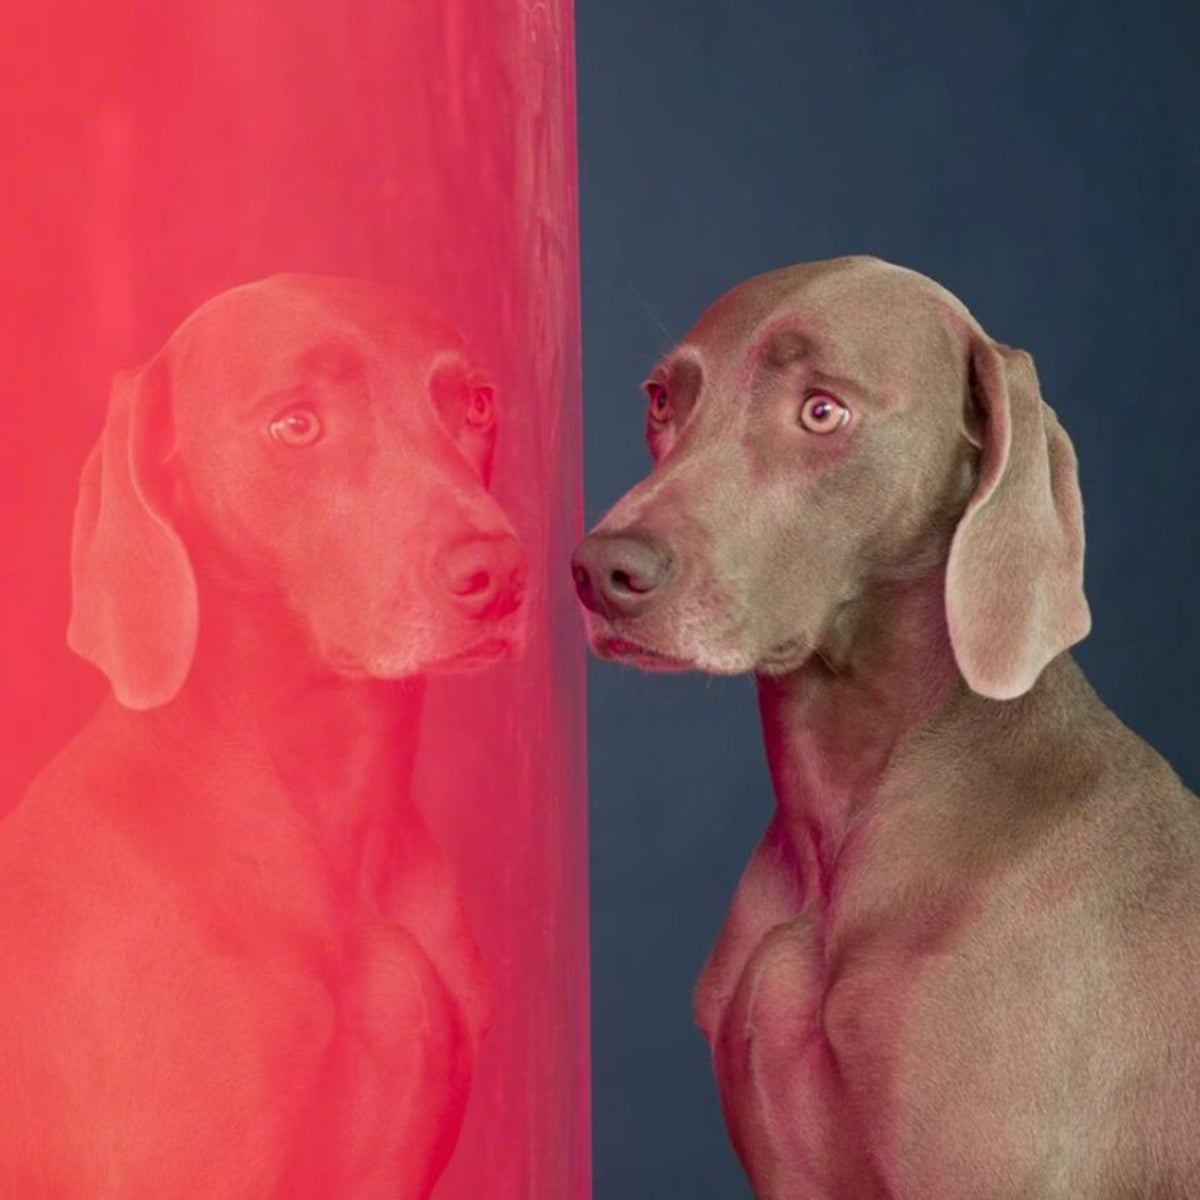 William Wegman's video shows two dogs intently following something that has grabbed their attention.